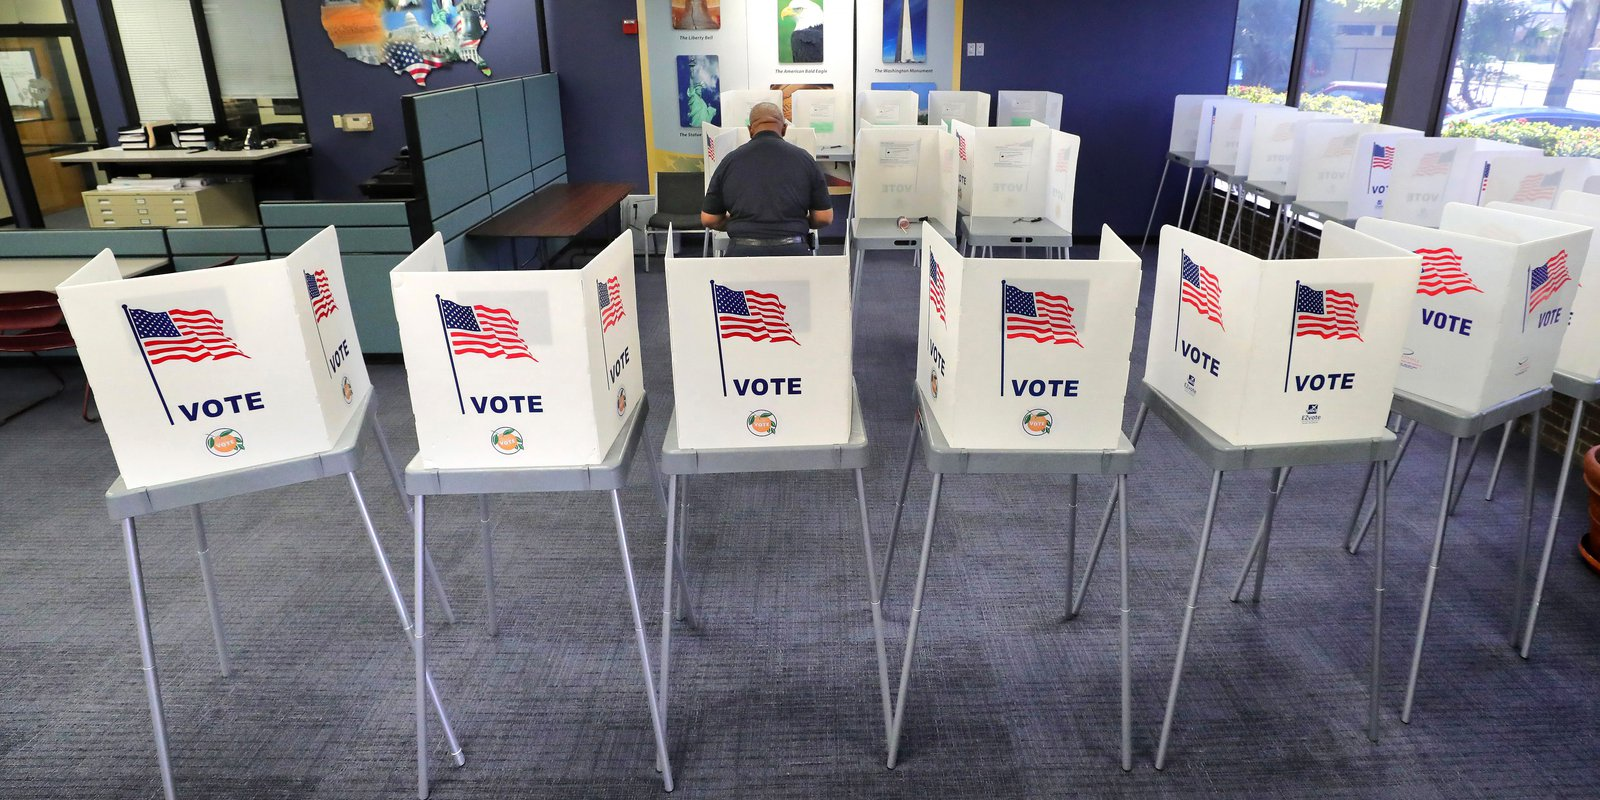 A voter casts his ballot at the Orange County Supervisor of Elections office in Orlando, Fla., Tuesday, March 17, 2020, in the Florida primary. Democratic voters are making their choice for their party's nominee in the 2020 presidential election. (Joe Burbank/Orlando Sentinel/Tribune News Service via Getty Images)